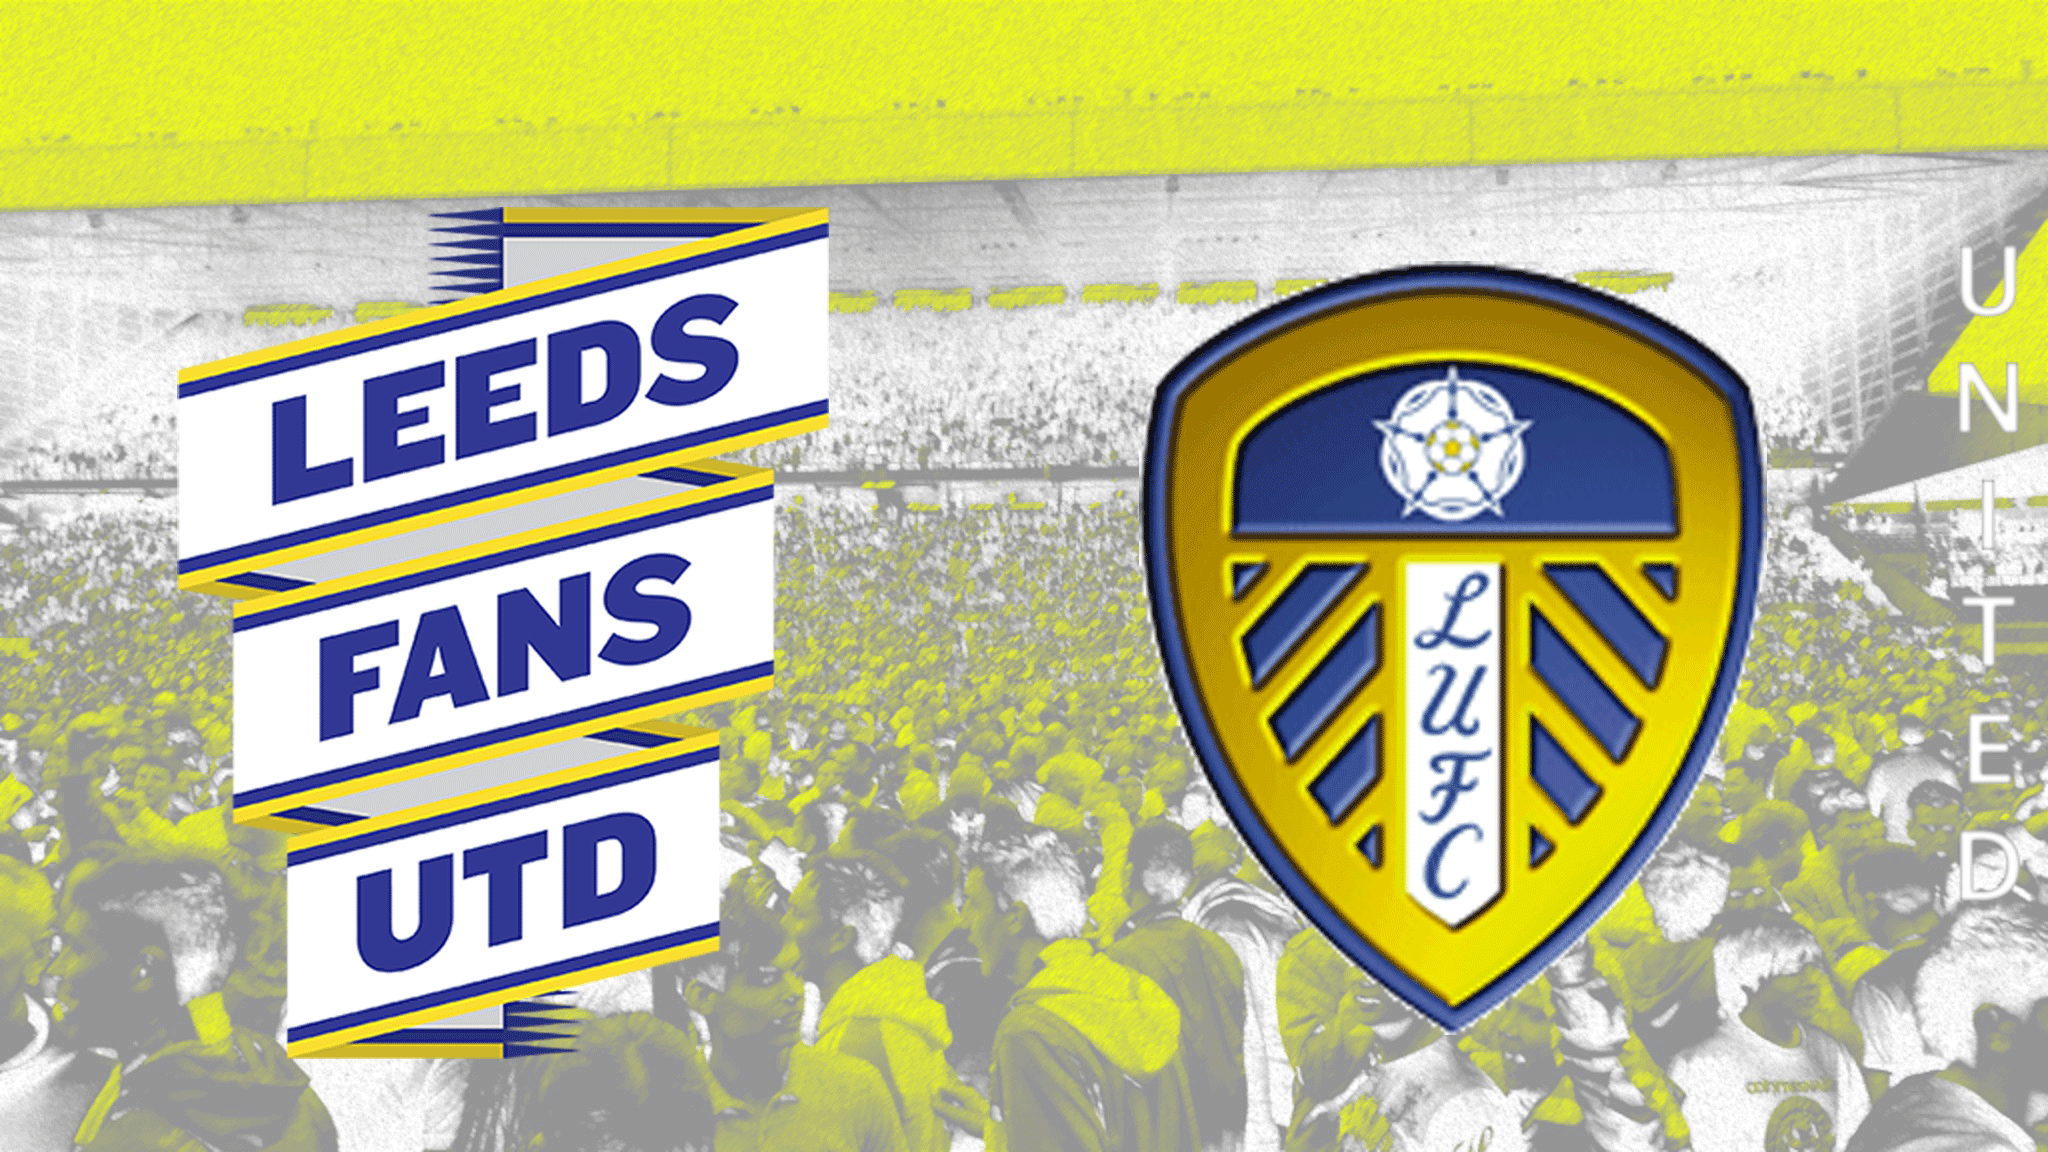 leeds united - photo #34